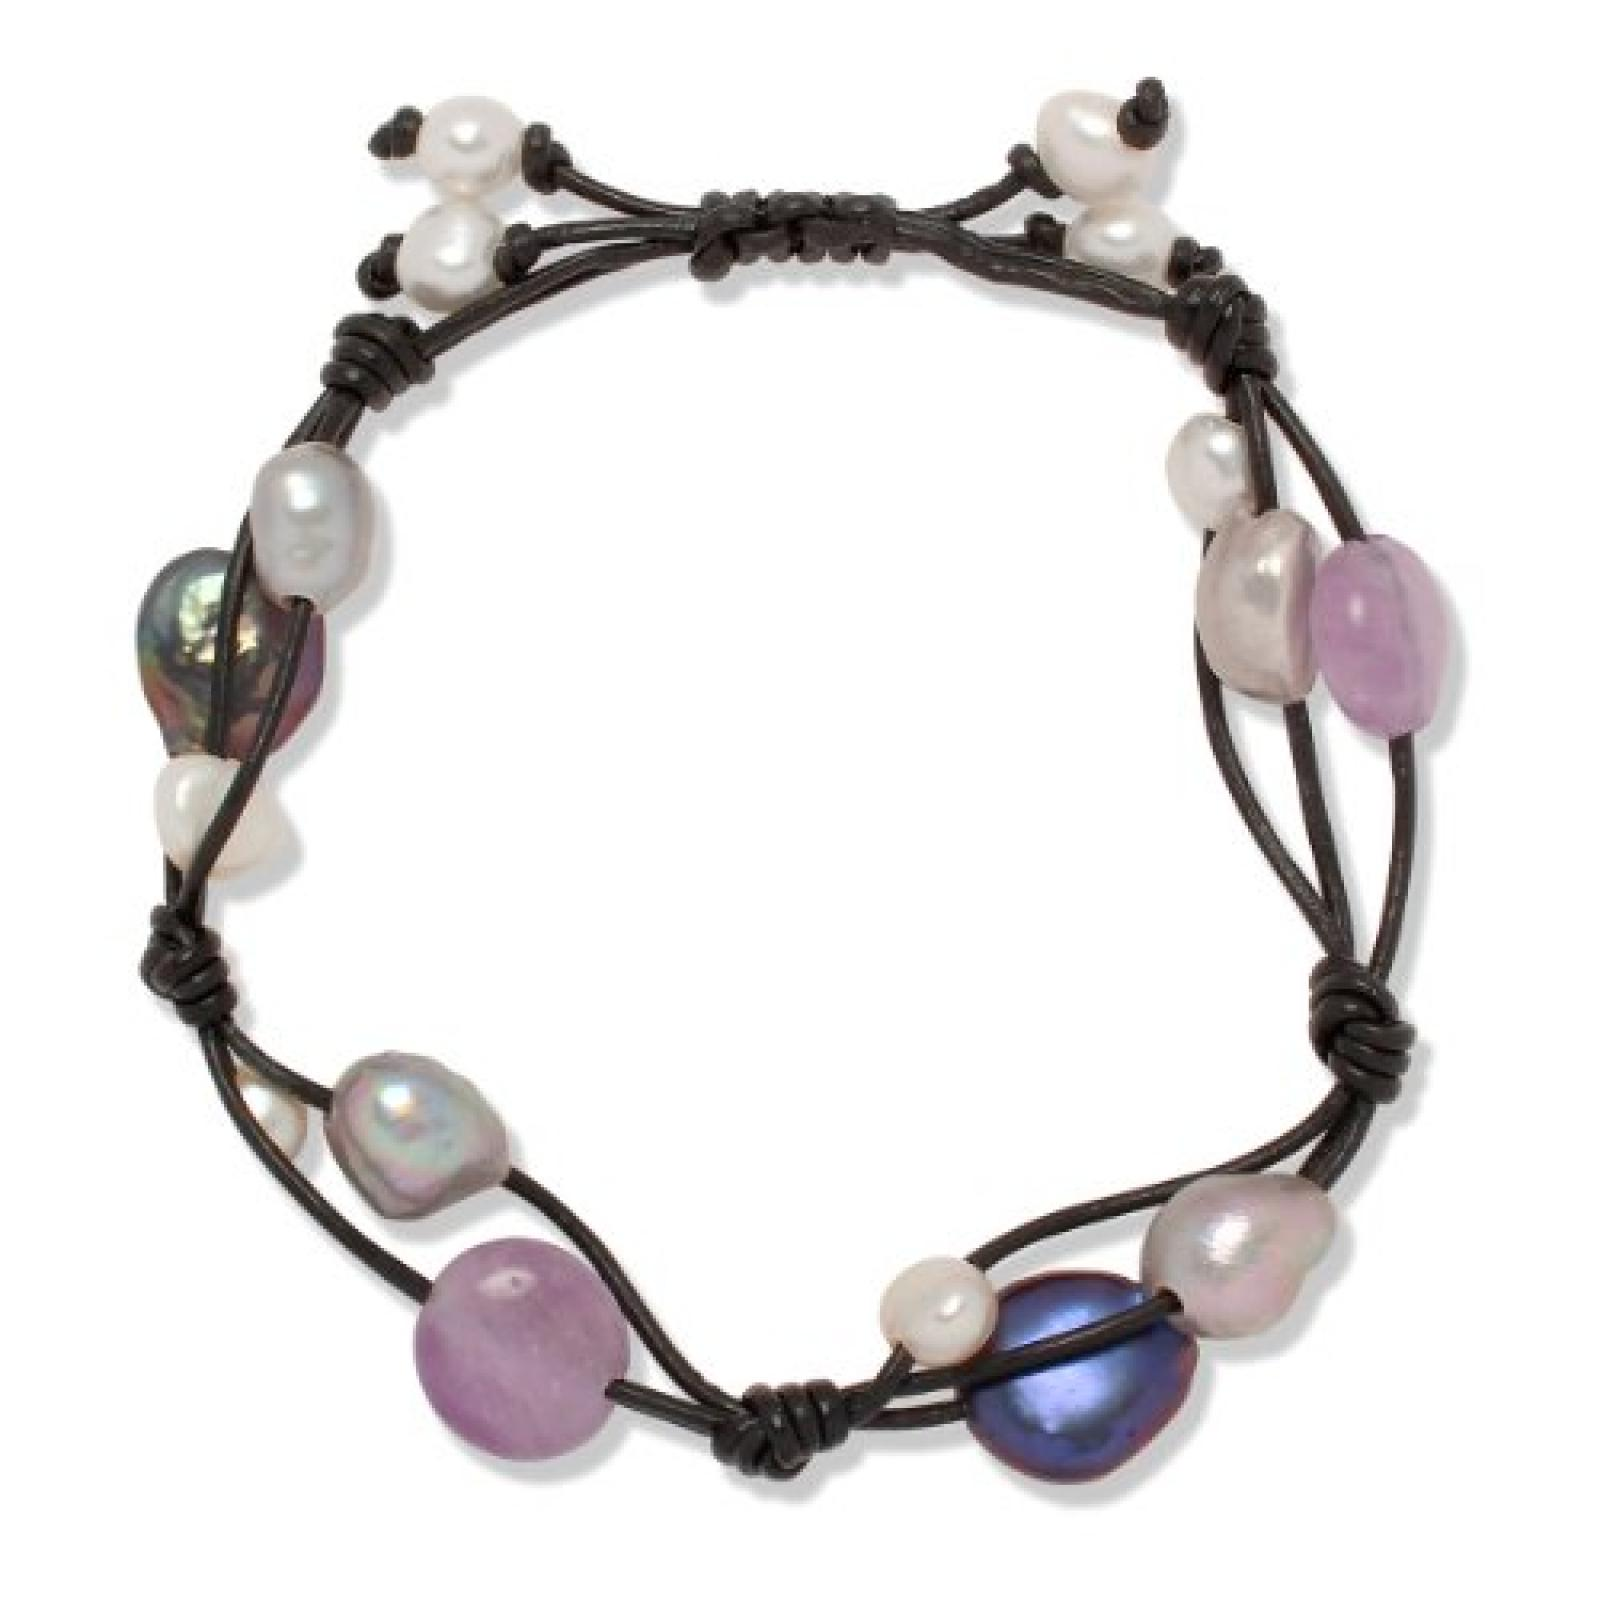 Valero Pearls Fashion Collection Damen-Armband Hochwertige Süßwasser-Zuchtperlen in ca.  5-8 mm Oval weiß / silbergrau / pfauenblau  Leder schwarz Amethyst 18 bis 24 cm   60020120